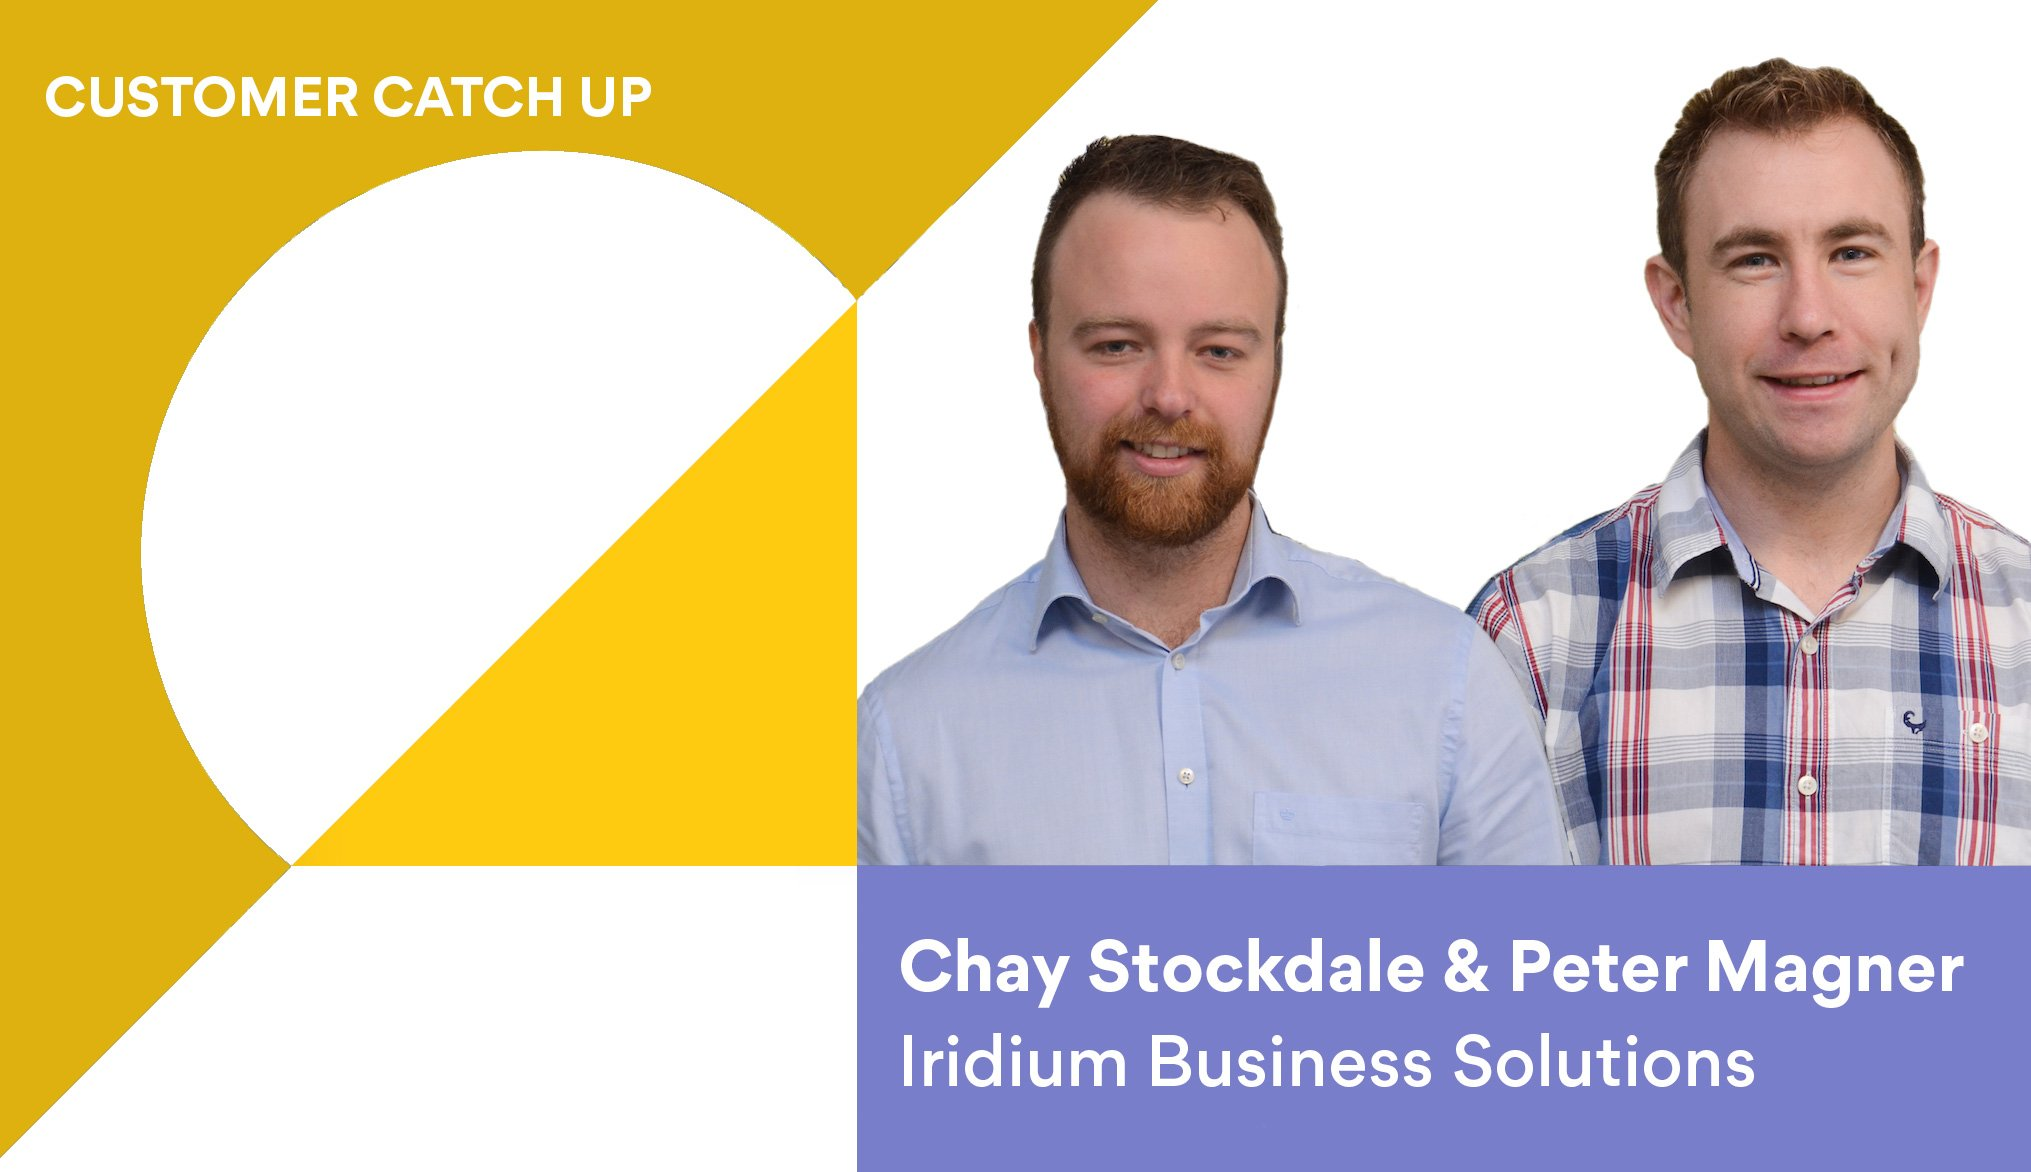 Chay Stockdale & Peter Magner Iridium Business Solutions